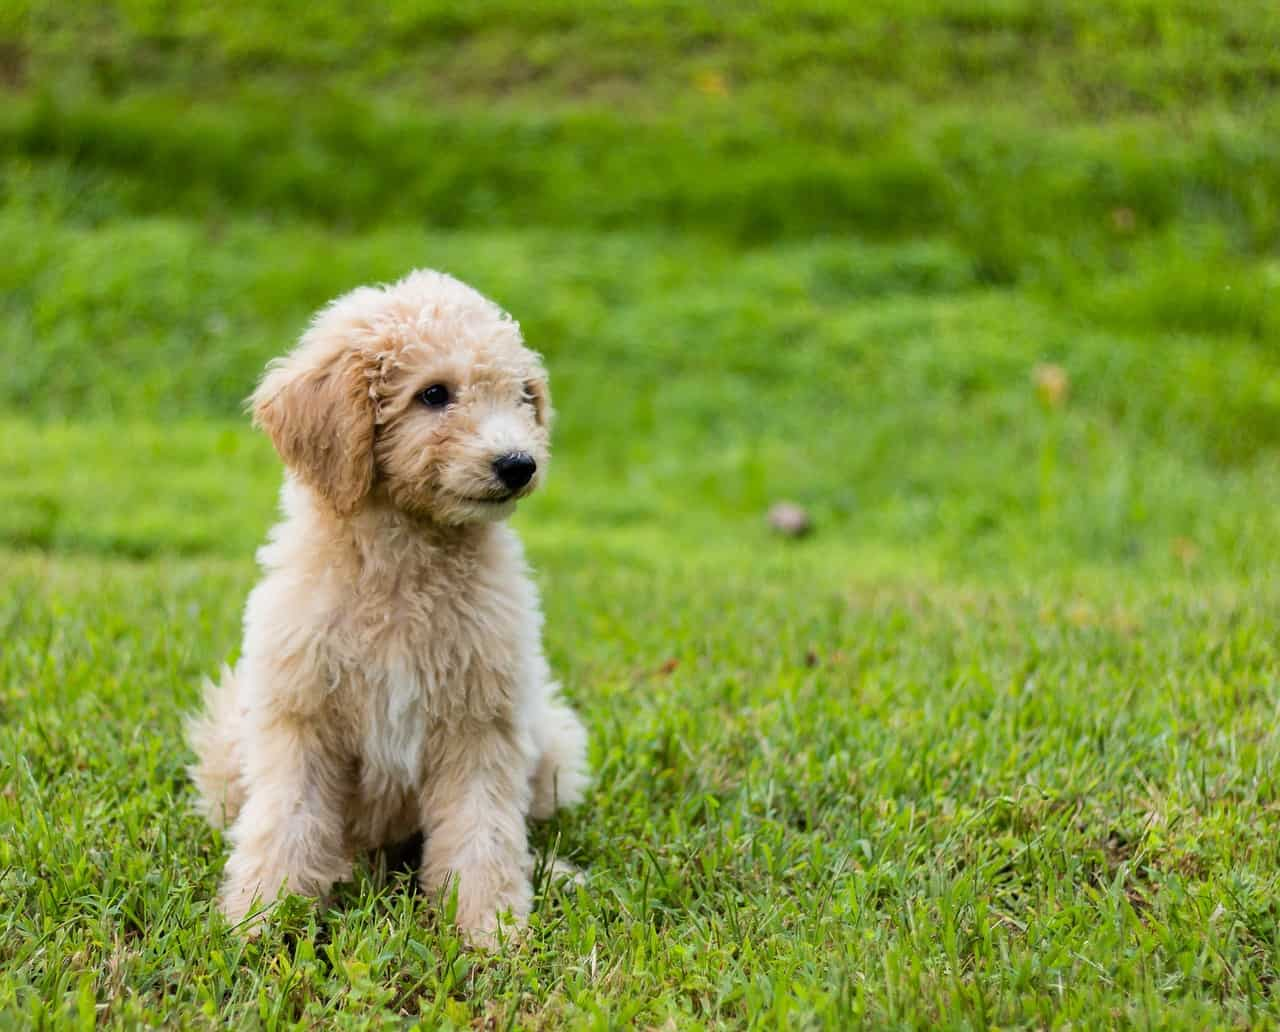 Goldendoodle puppy sitting in the grass